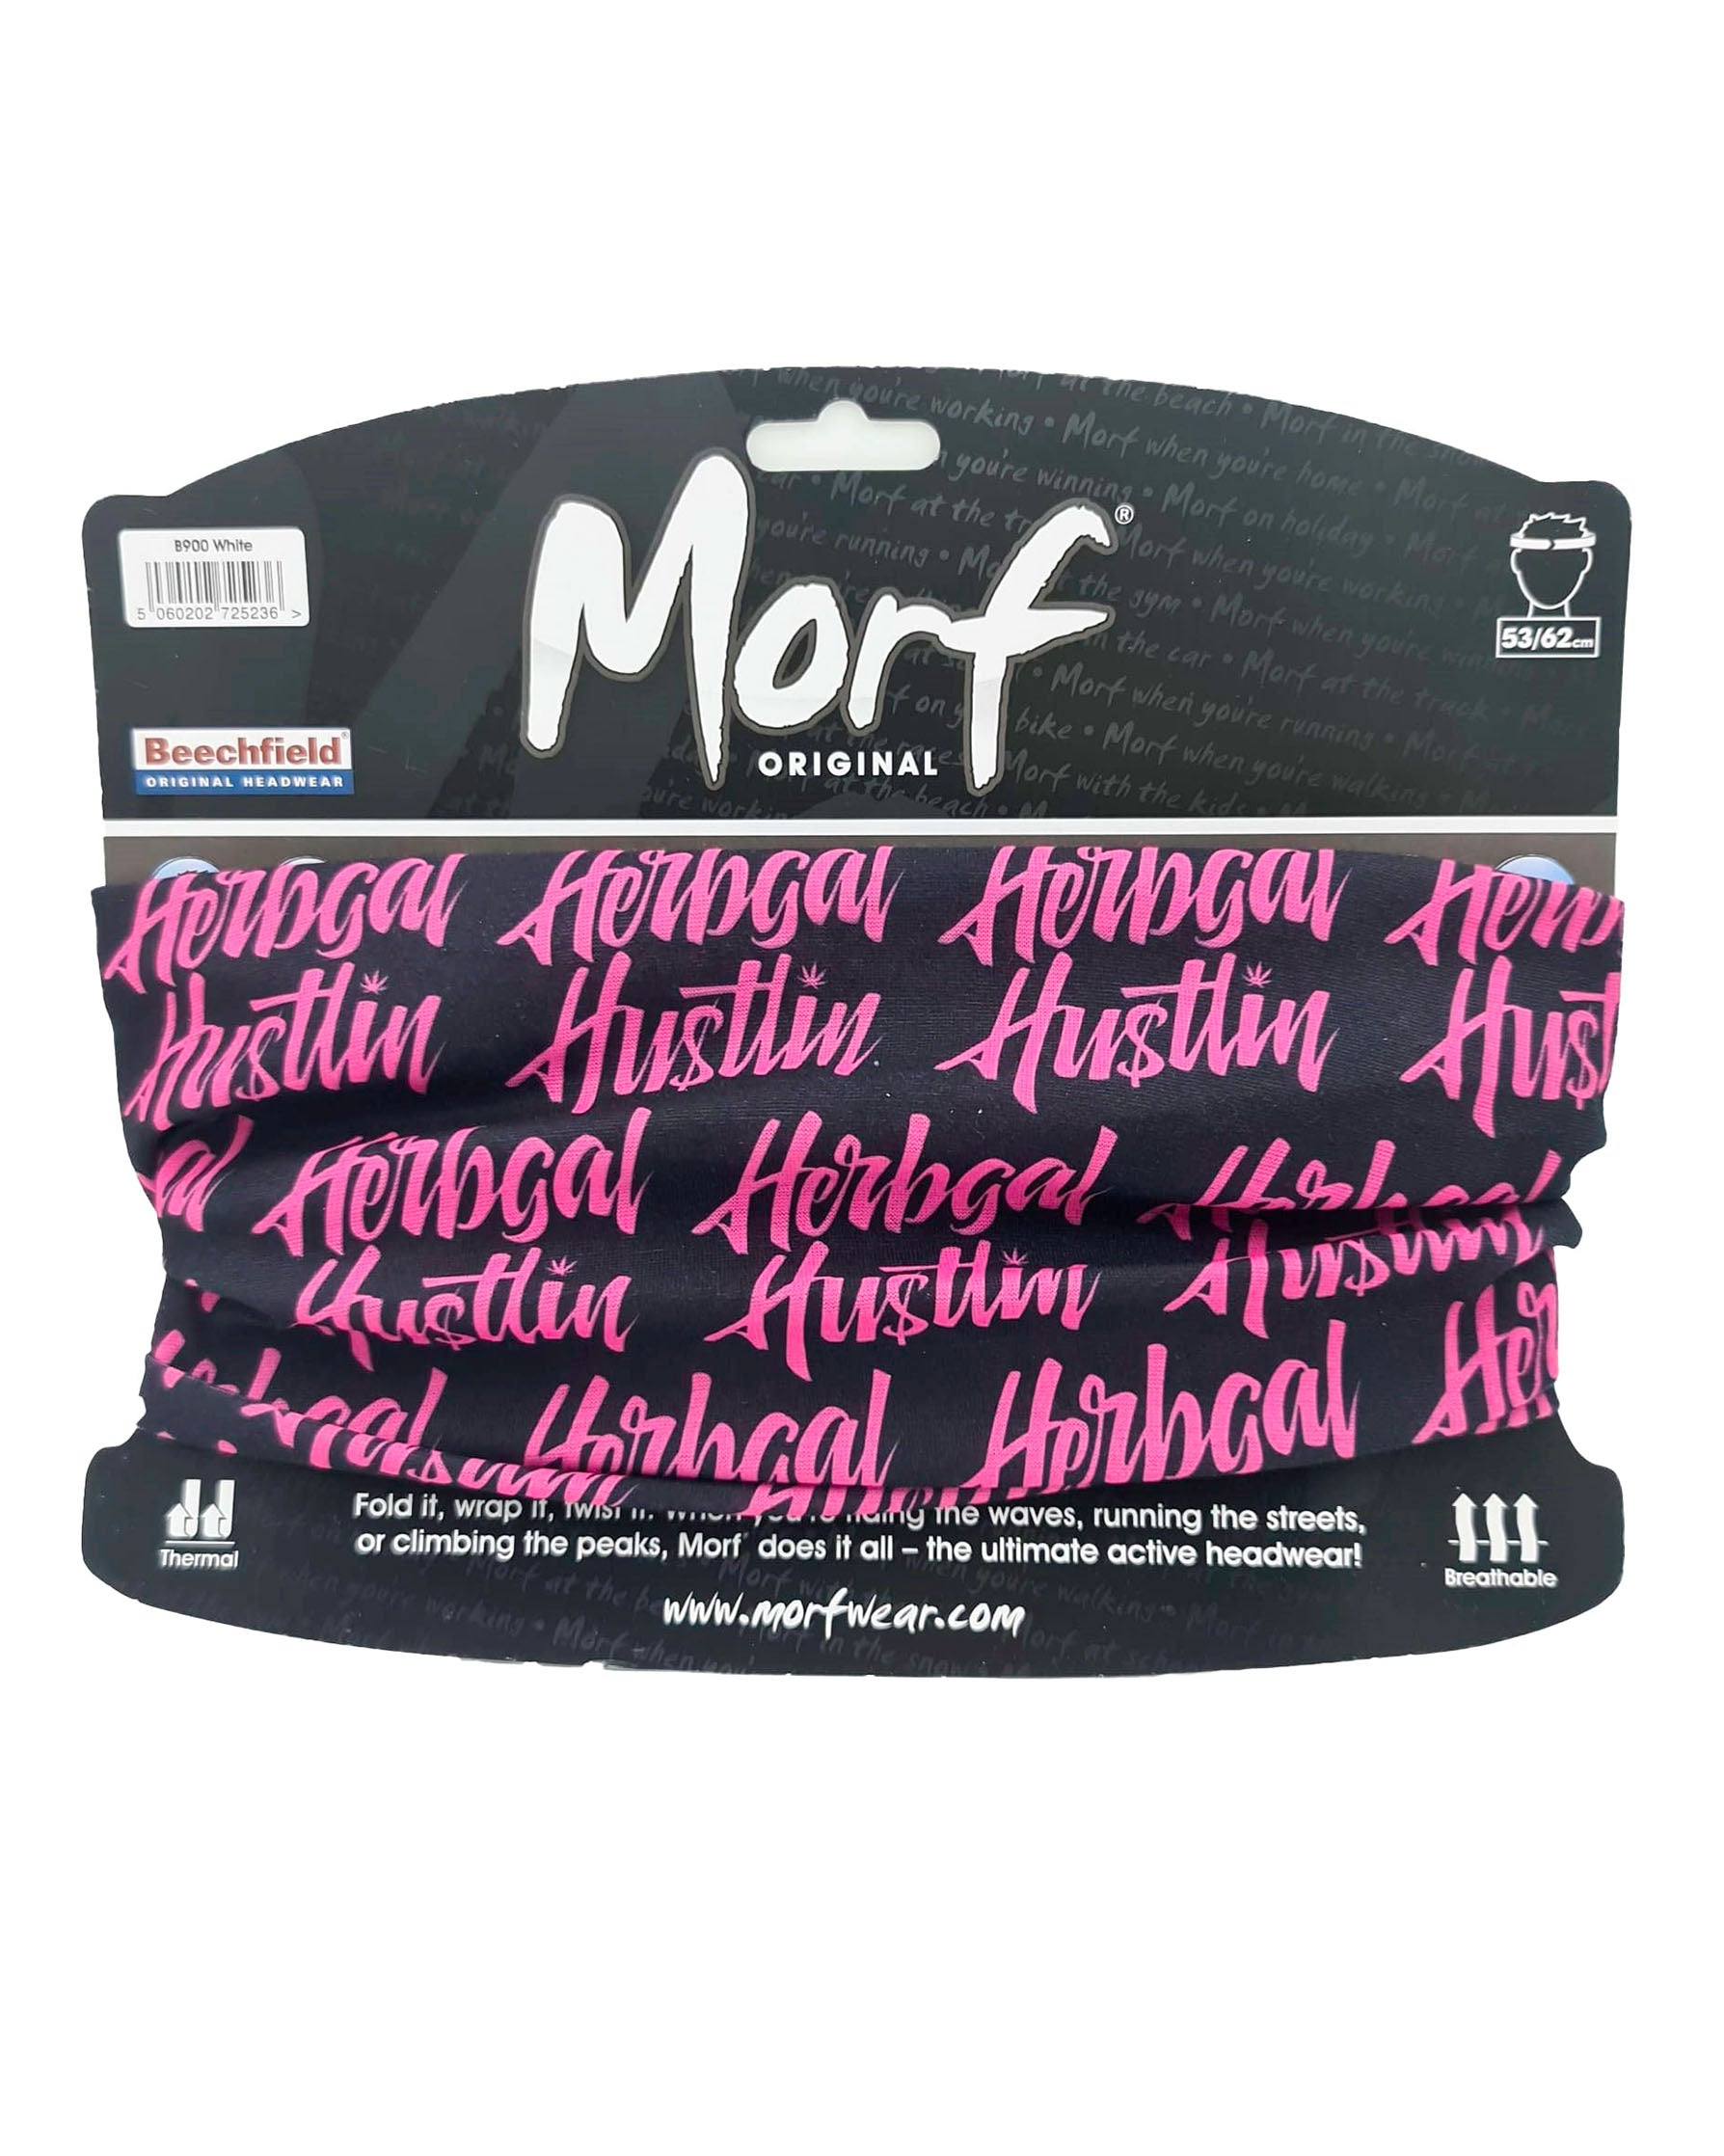 Herbgal Hustlin Script Face Covering/Bandana - Black/Pink